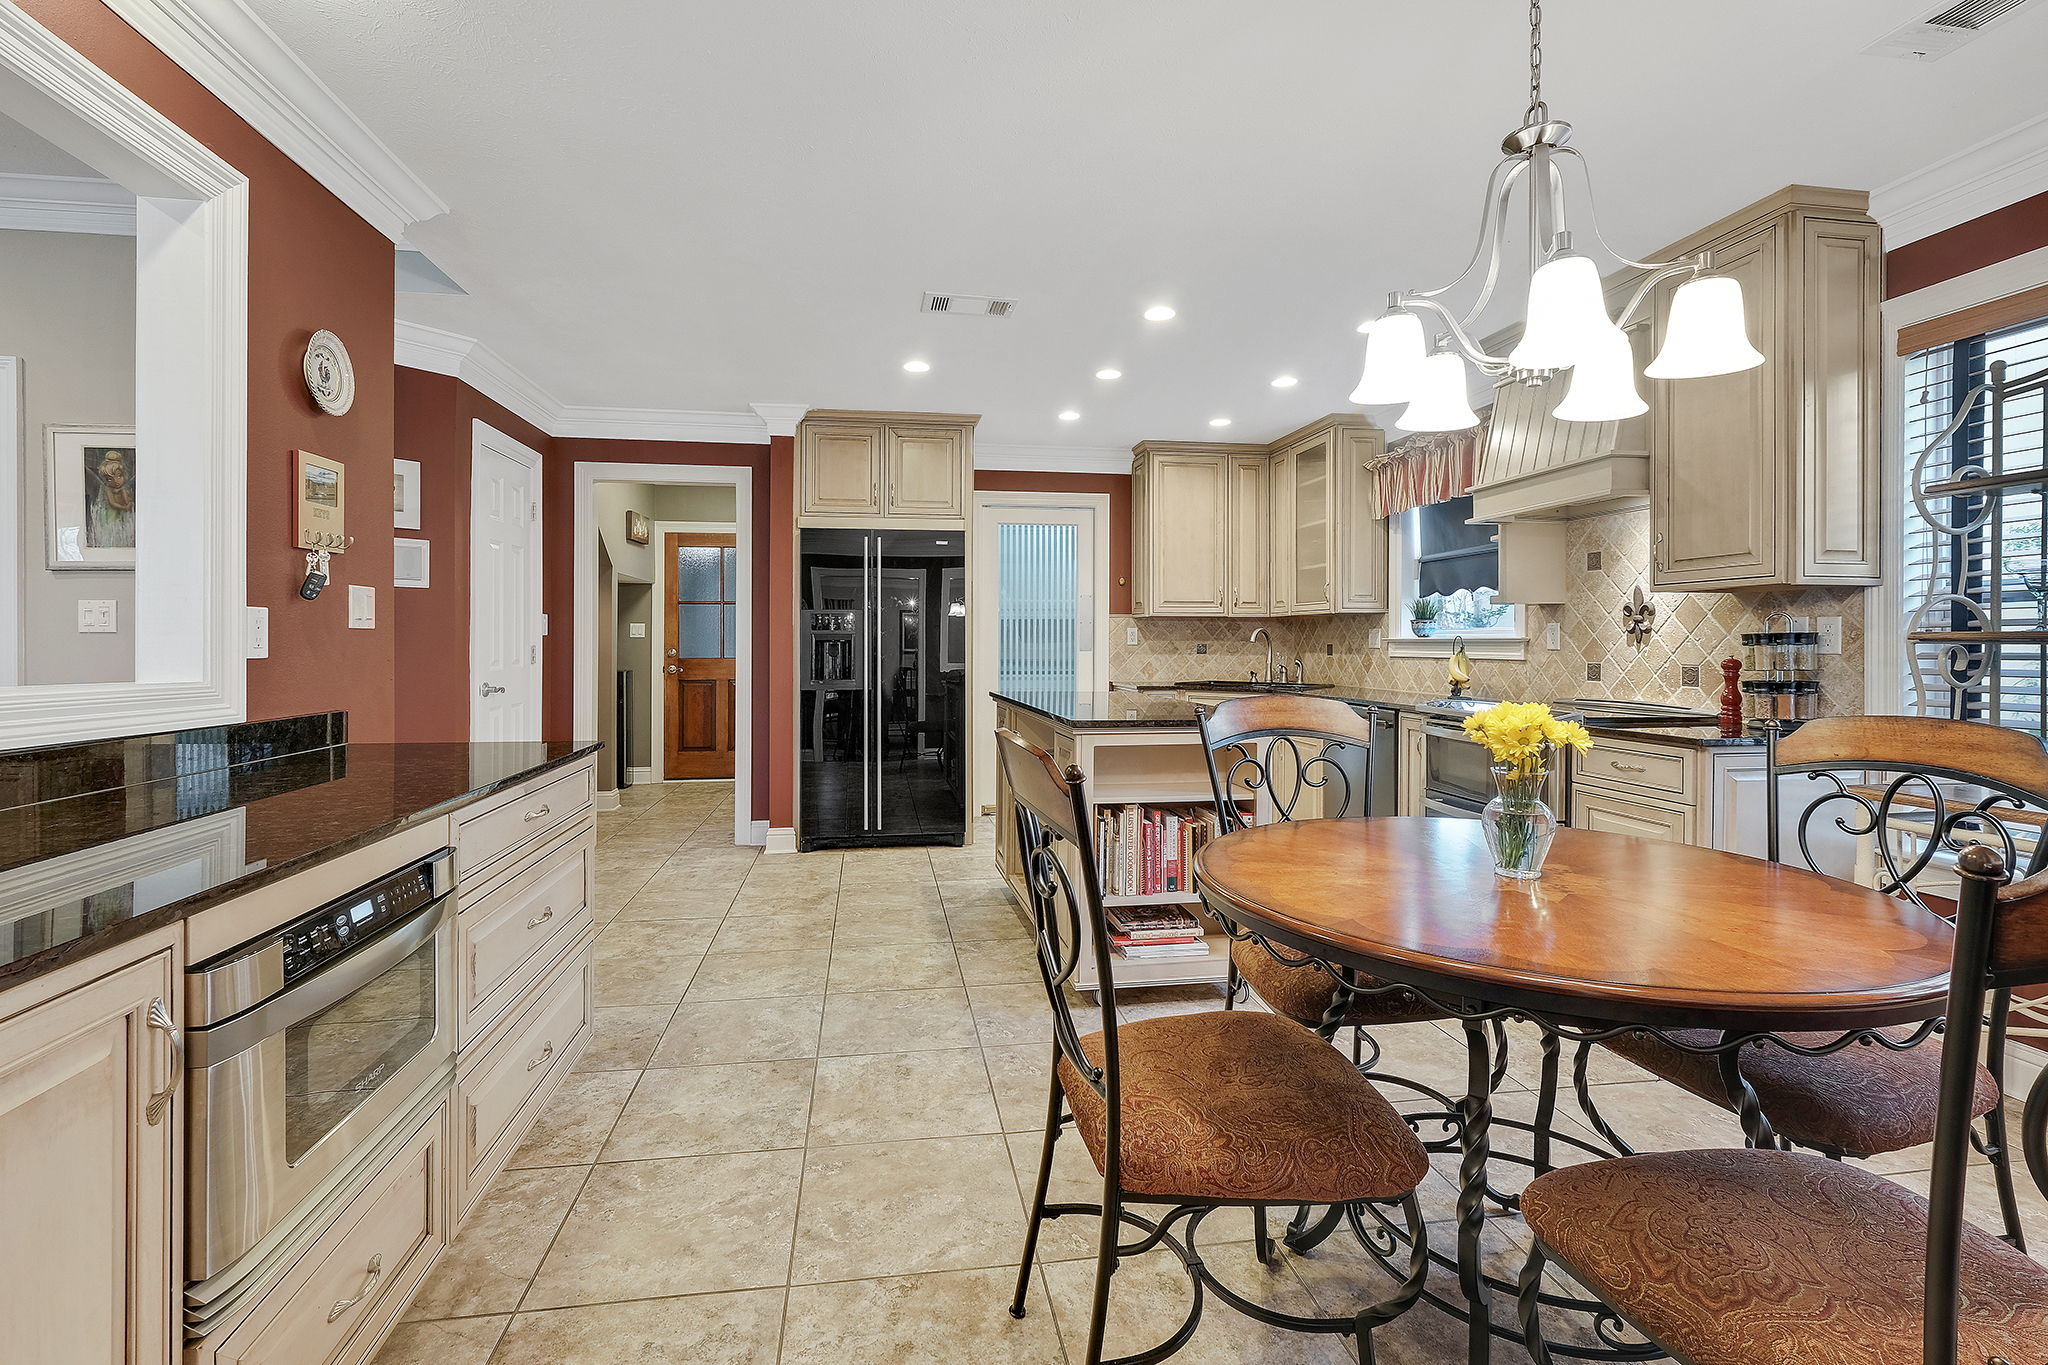 This Kitchen has everything you need!